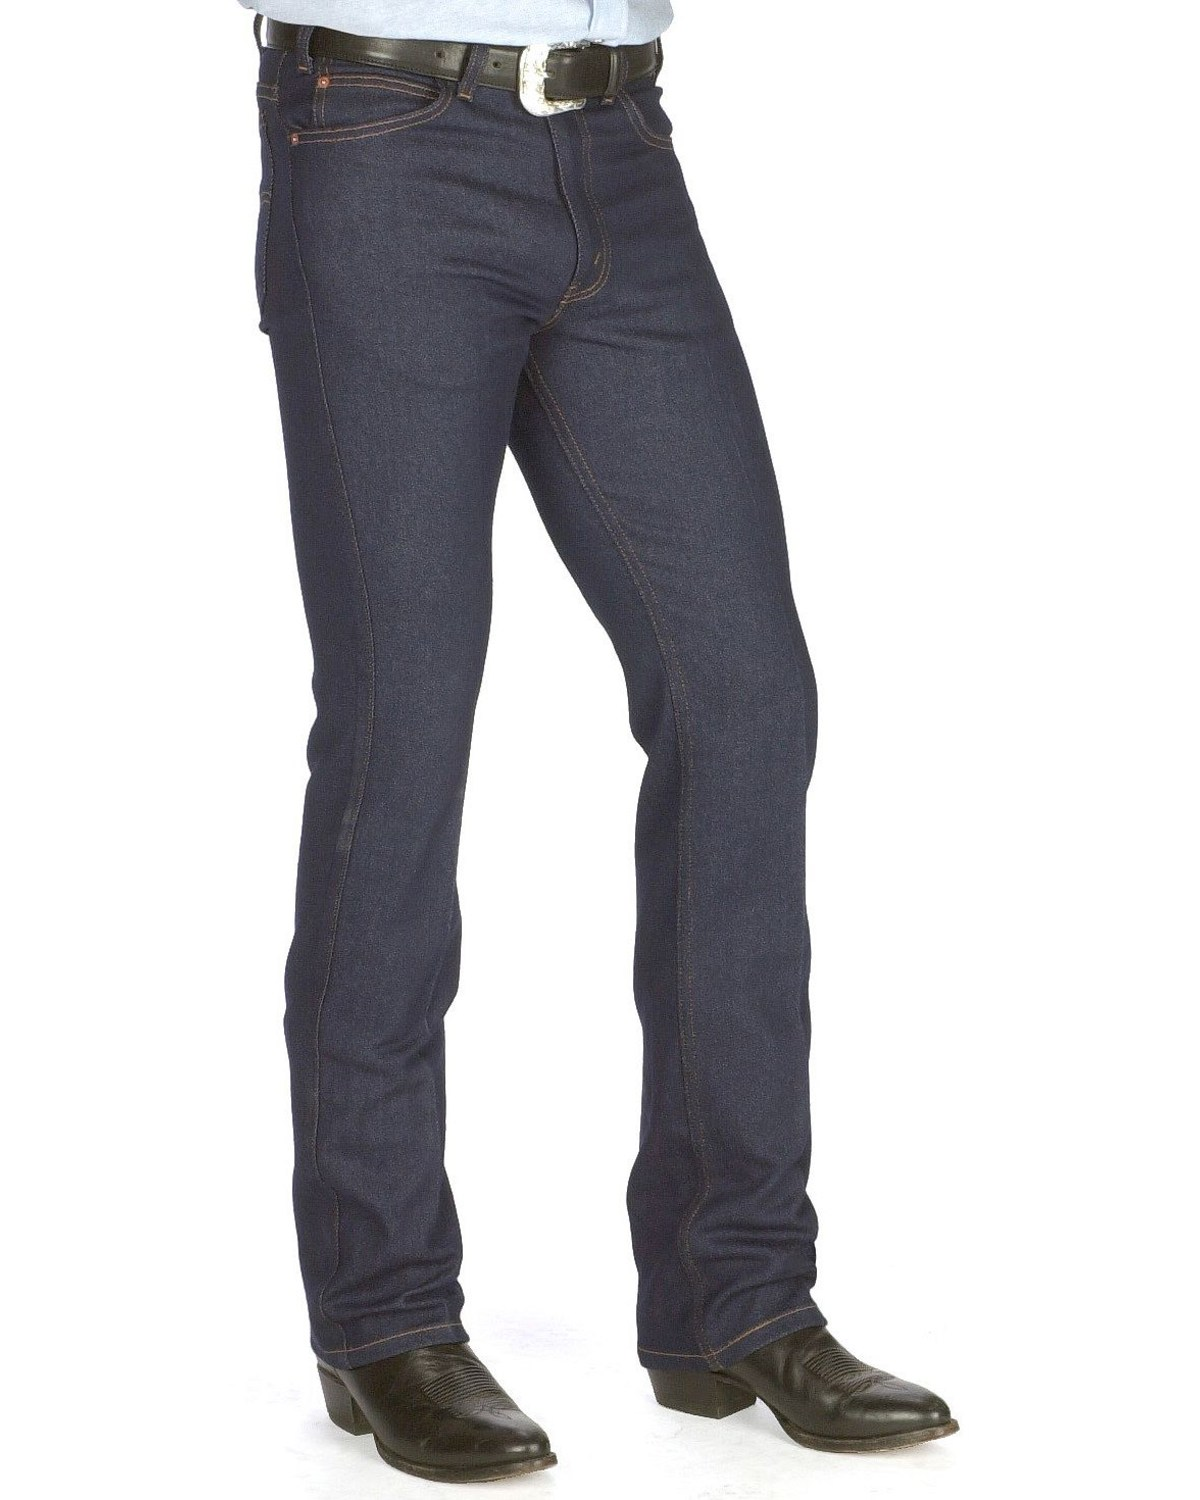 Best Mens Boots For Jeans